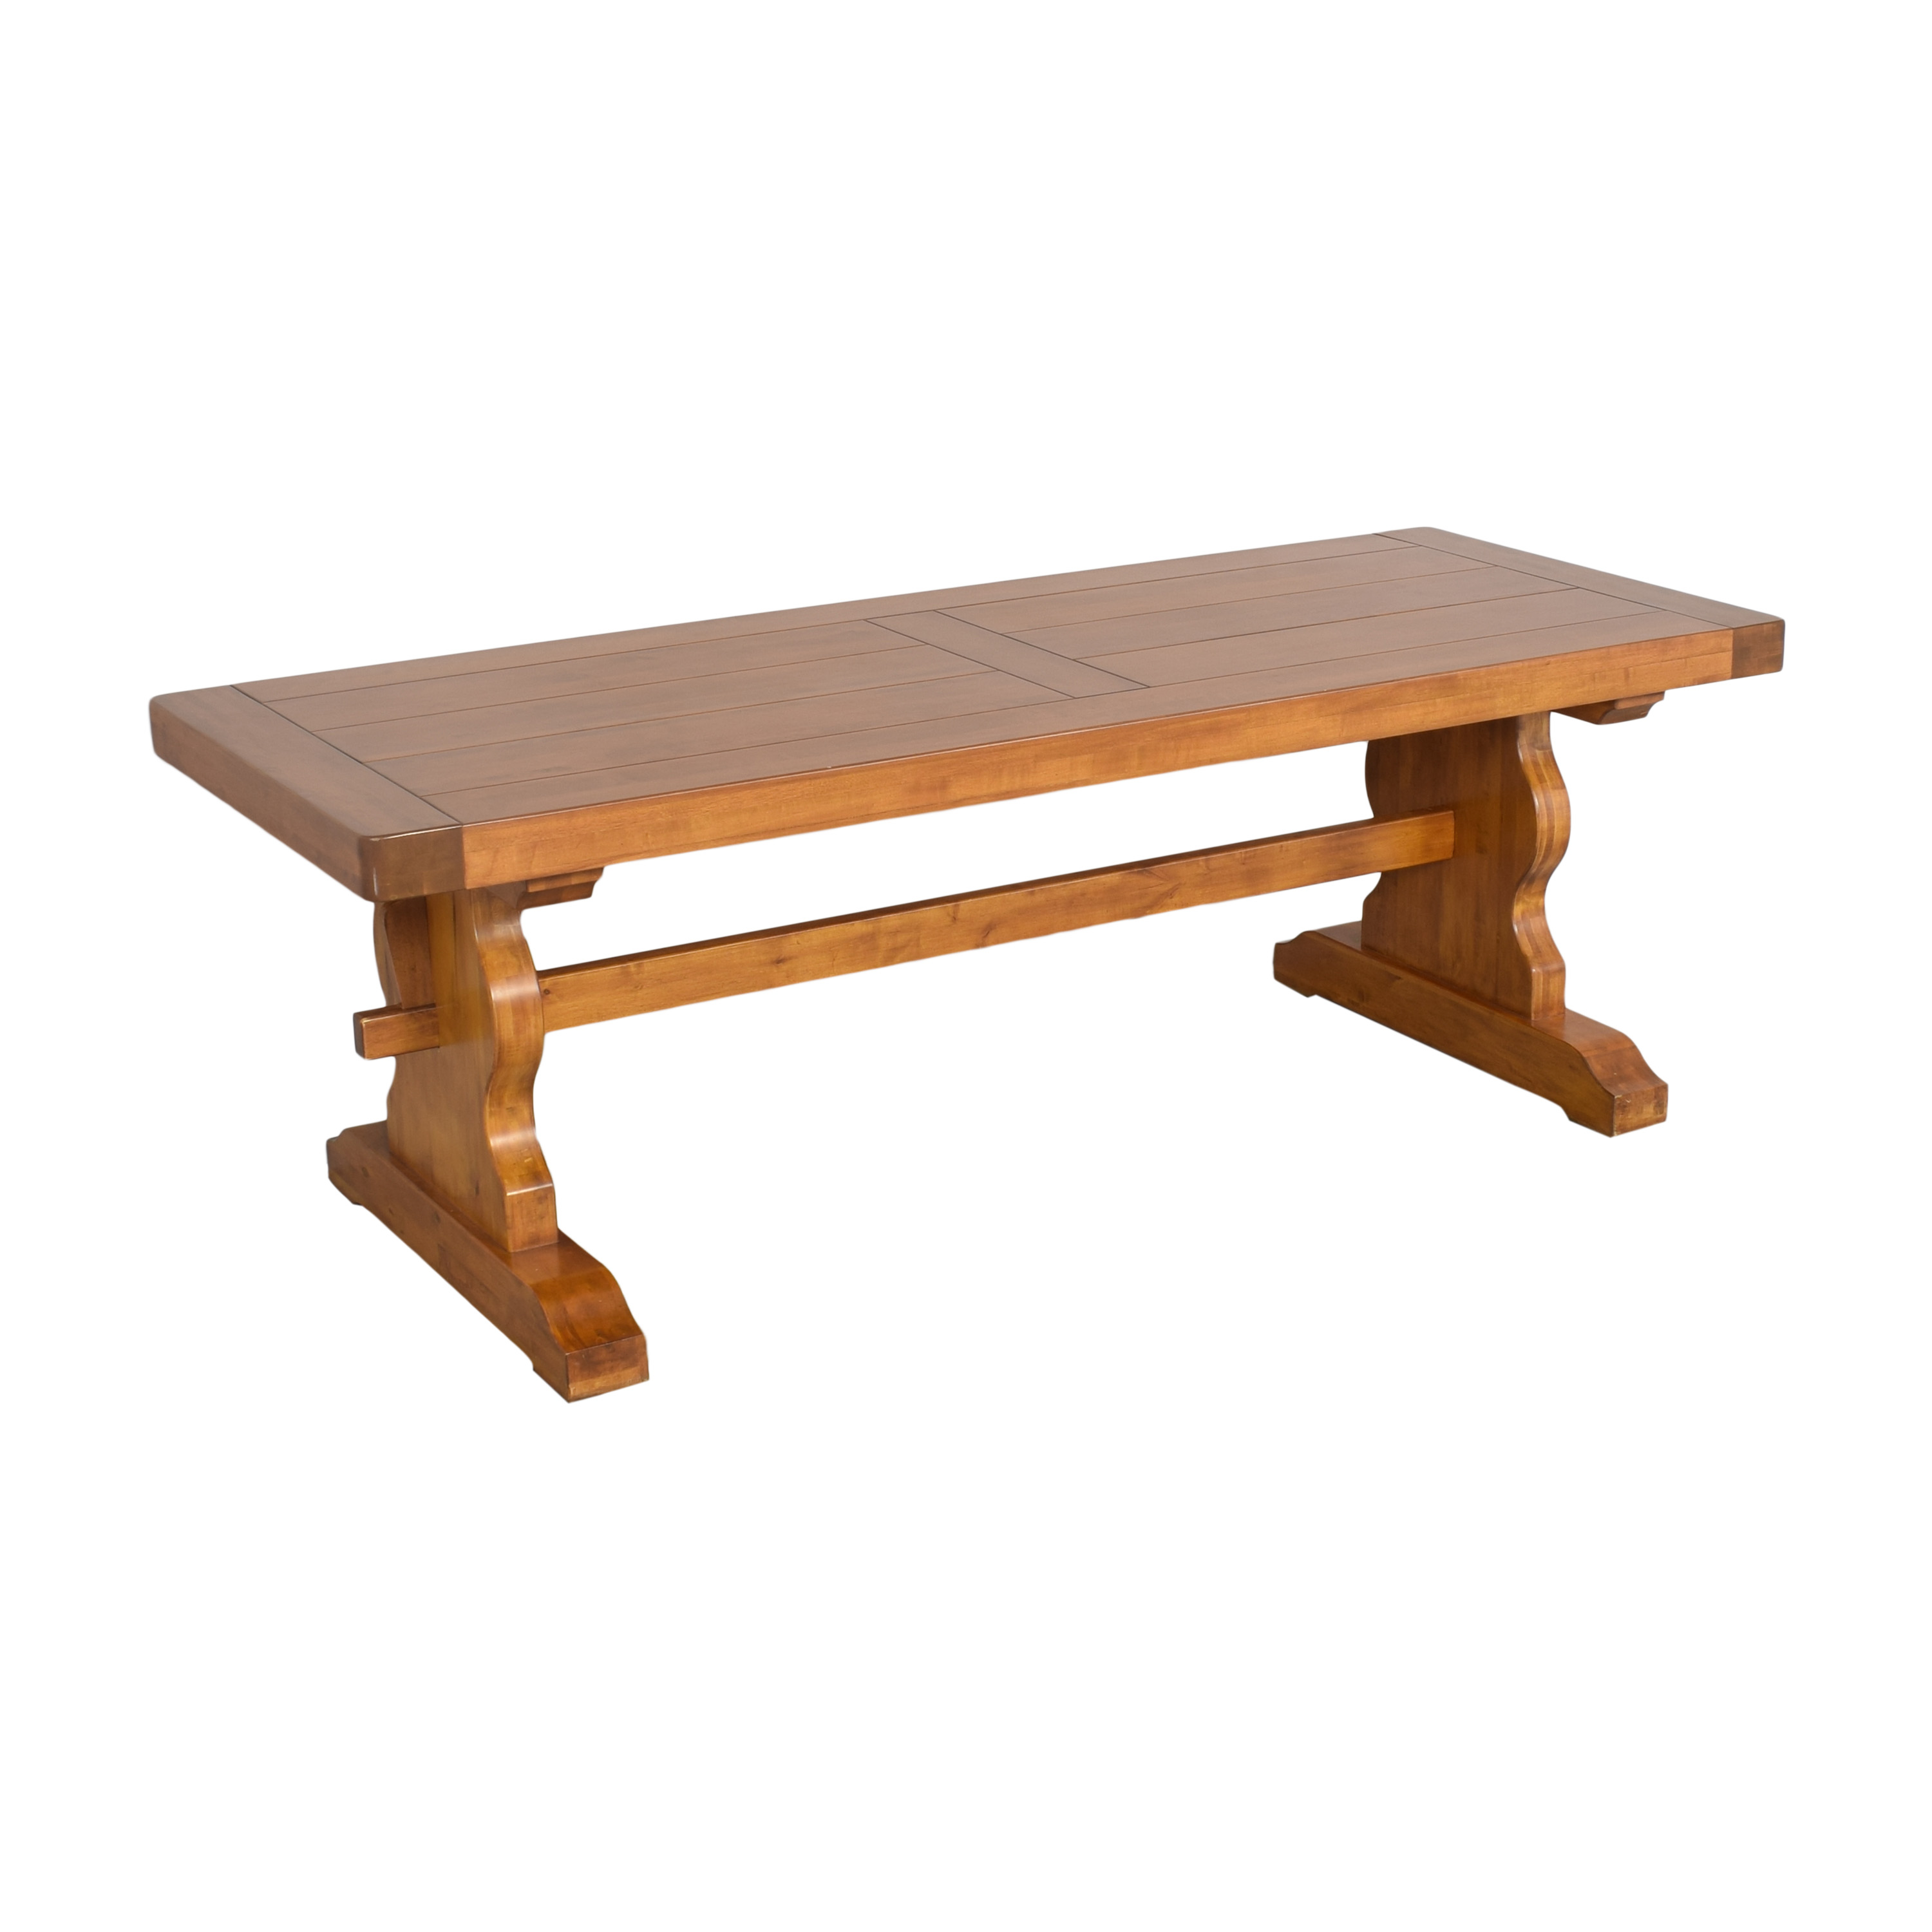 Double Pedestal Dining Table price